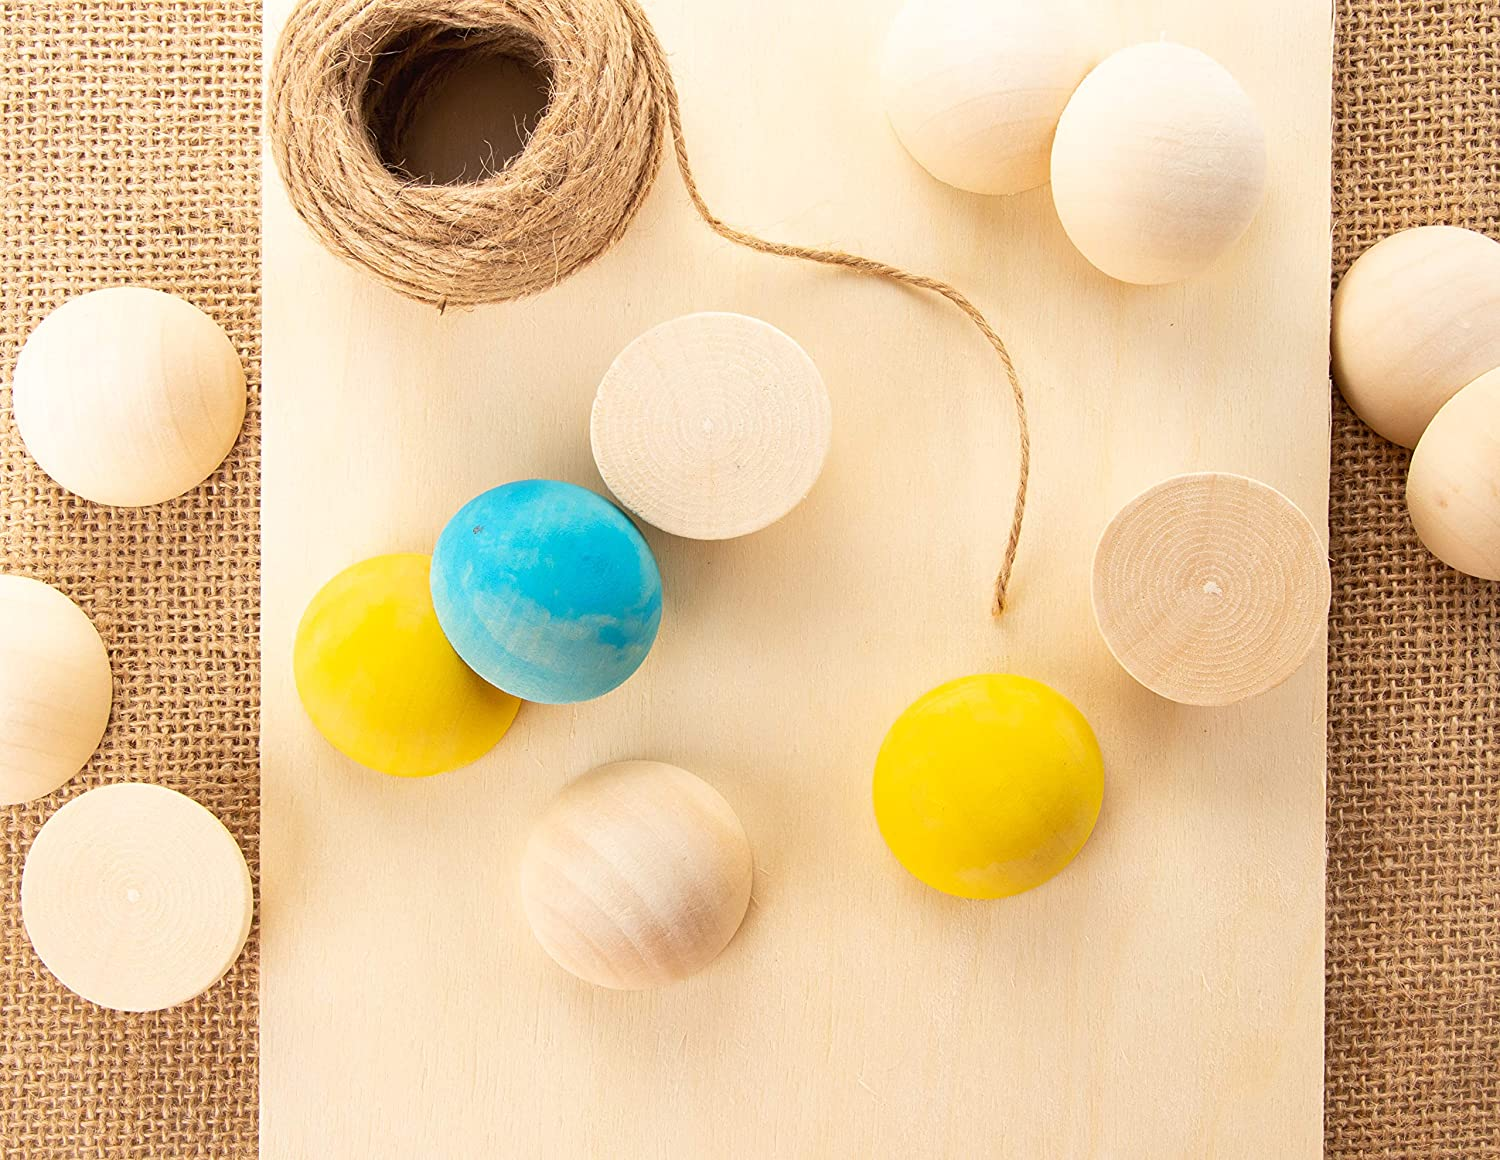 Half Craft Balls for DIY Projects Mini Hemisphere 30-Pack Unfinished Half Wooden Balls Kids Arts and Craft Supplies Split Wood Balls 1.5 Inches Diameter